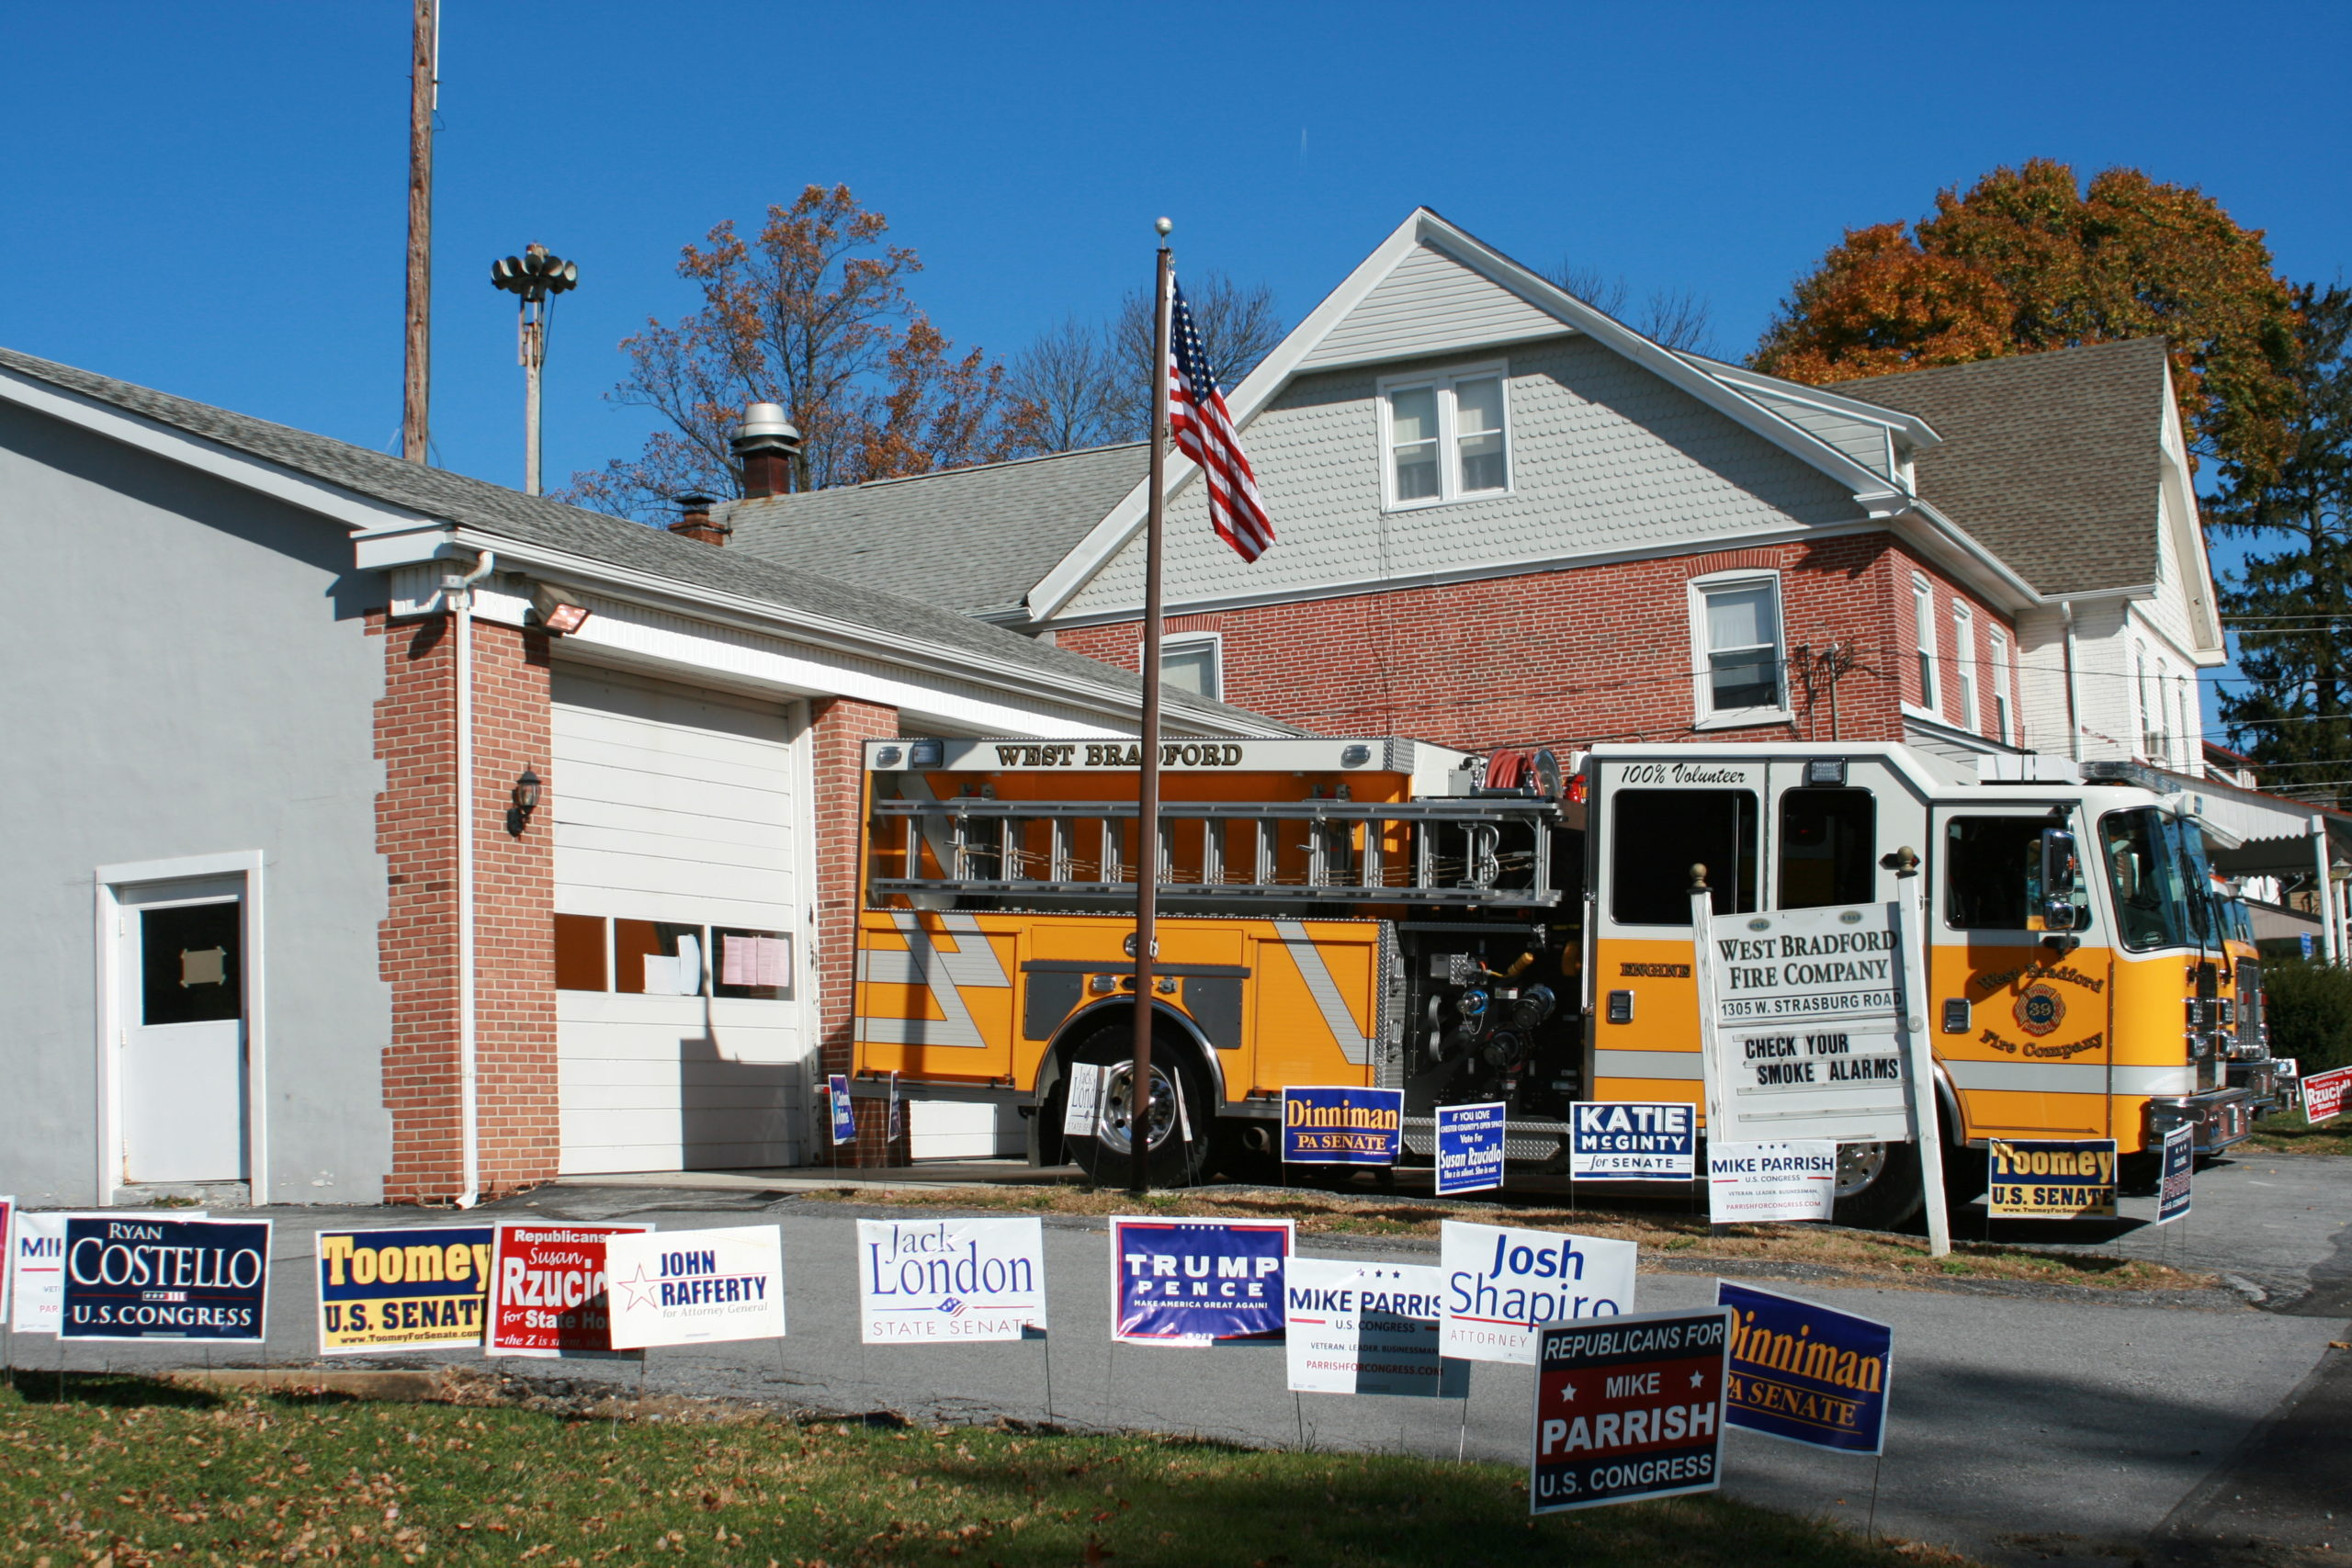 Analysis: Chester County Goes Blue, but Republicans Hold Seats in All Local Contests